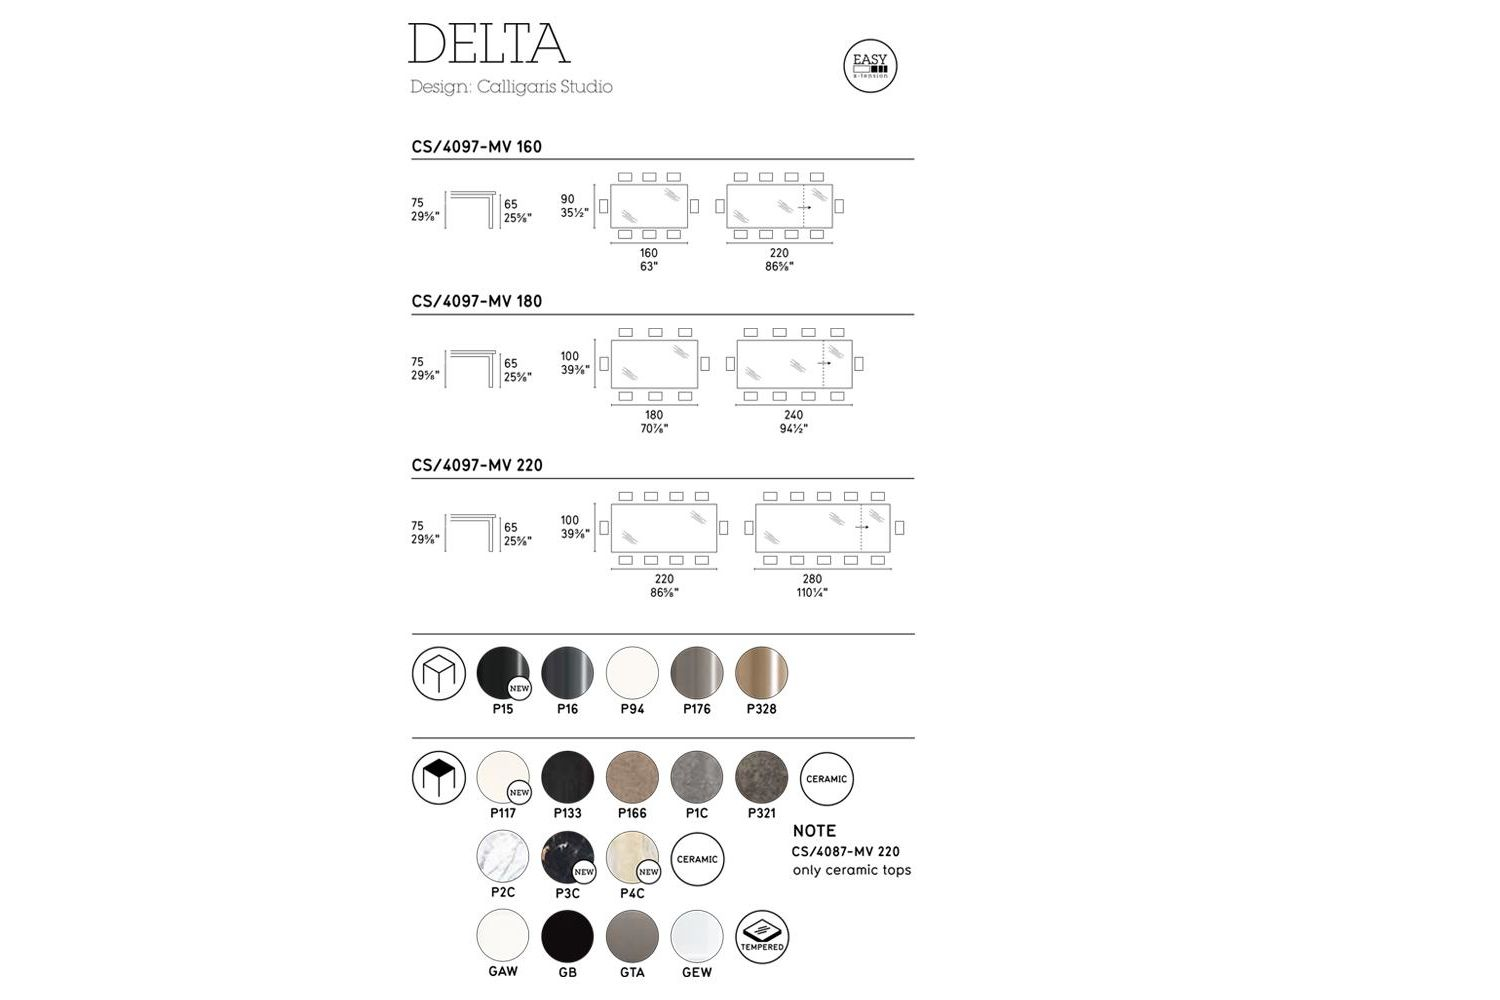 Delta%20Ceramic%20Schematics%20-%20Calligaris%20cs4087-MV.jpg  Delta Table - Calligaris - cs4087-MV - Ceramic Glass Metal - Schematics  Delta%20Ceramic%20Schematics%20-%20Calligaris%20cs4087-MV.jpg Delta Table - Calligaris - cs4087-MV - Ceramic Glass Metal - Schematics